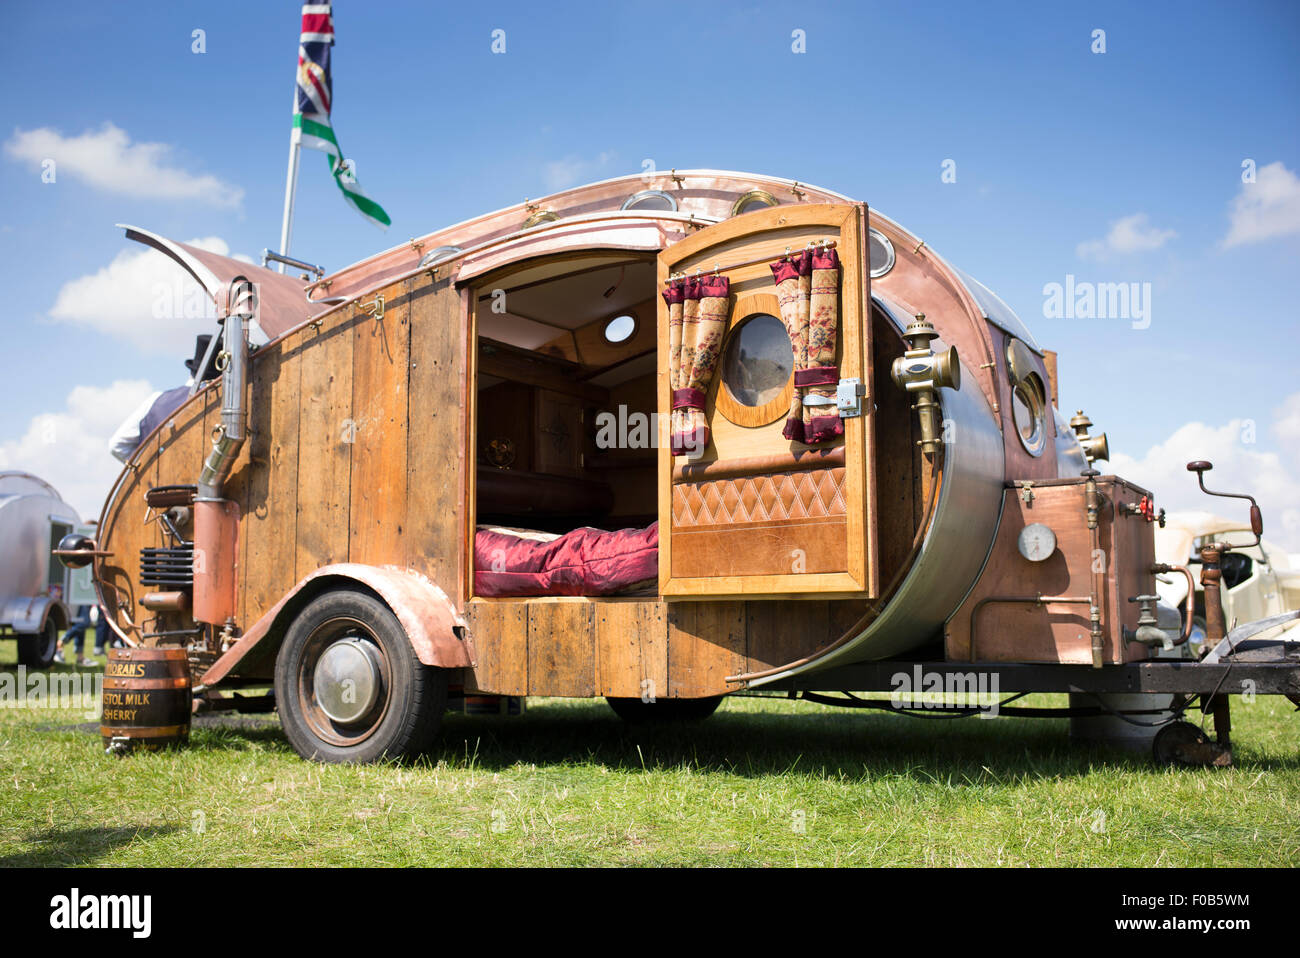 Posted in retro vintage tagged classic cars teardrop caravan vintage - Steampunk Teardrop Trailer At A Vintage Retro Festival Newbury England